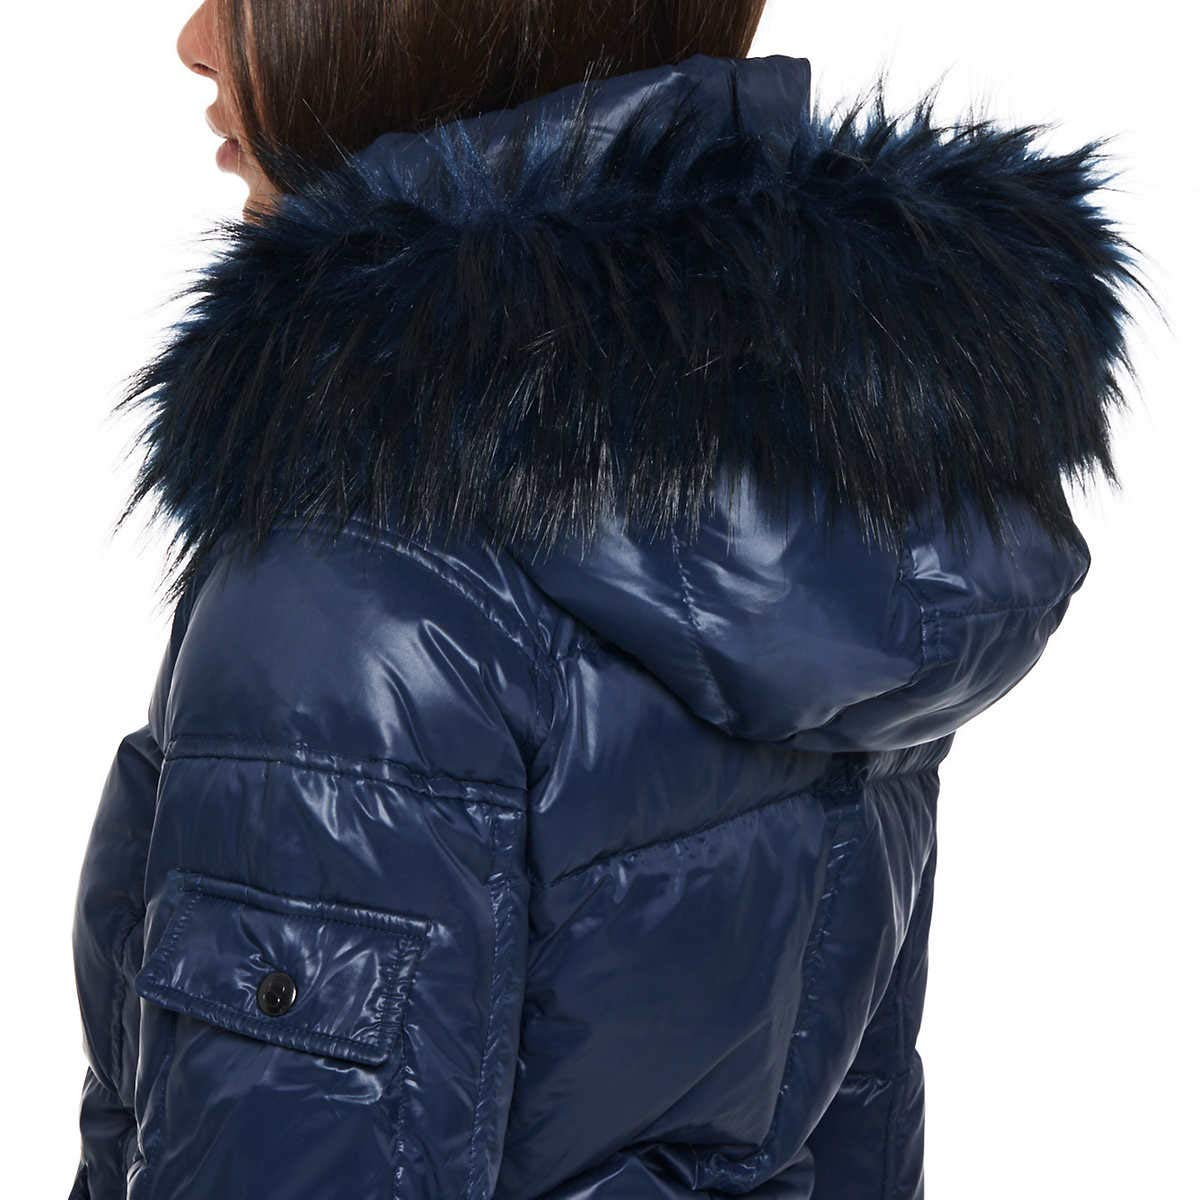 S13 Womens Kylie Faux Fur Trim Puffer Jacket